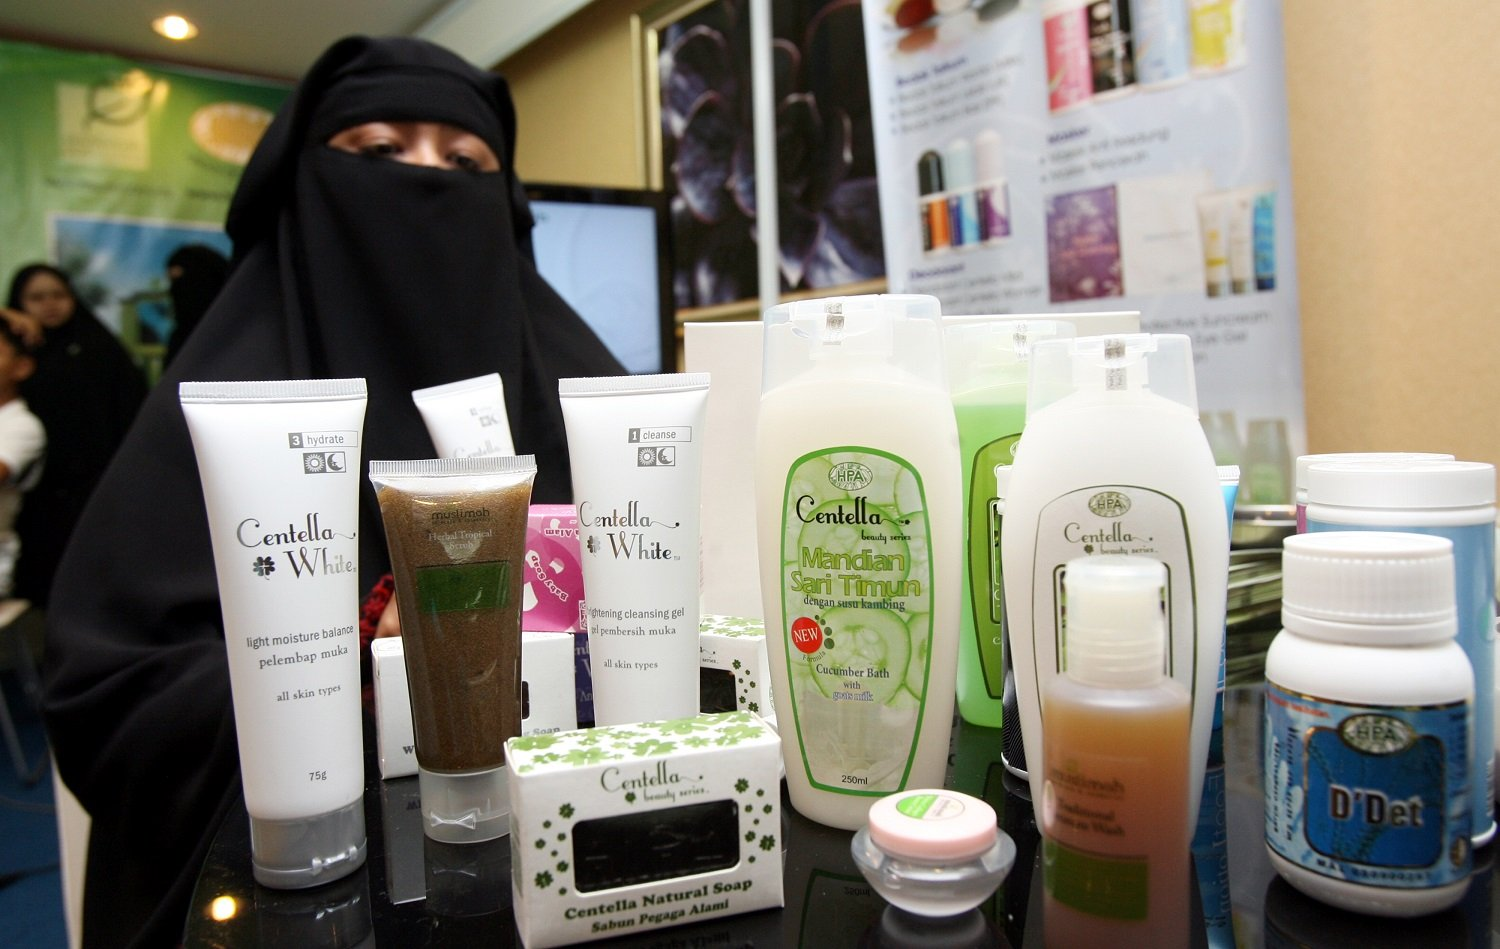 A display of halal-certified cosmetics andf beauty products at a Malaysia trade show in 2010 (AFP)